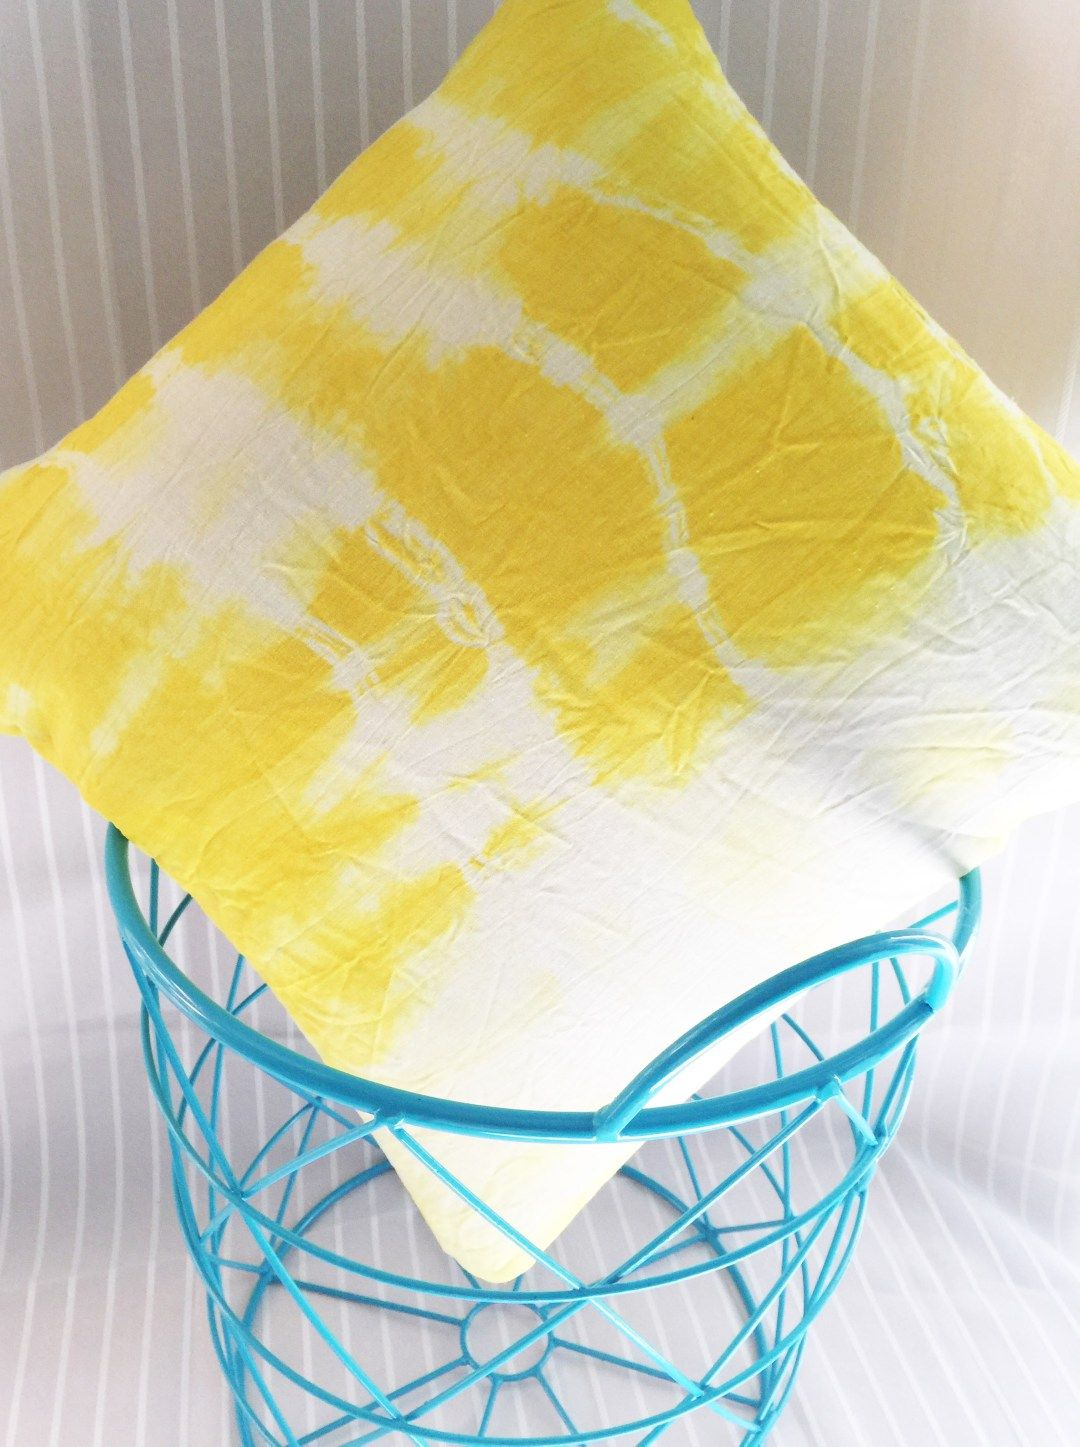 Tie-dye Fabric Using All Natural Dye | Natural, Fabrics and Craft